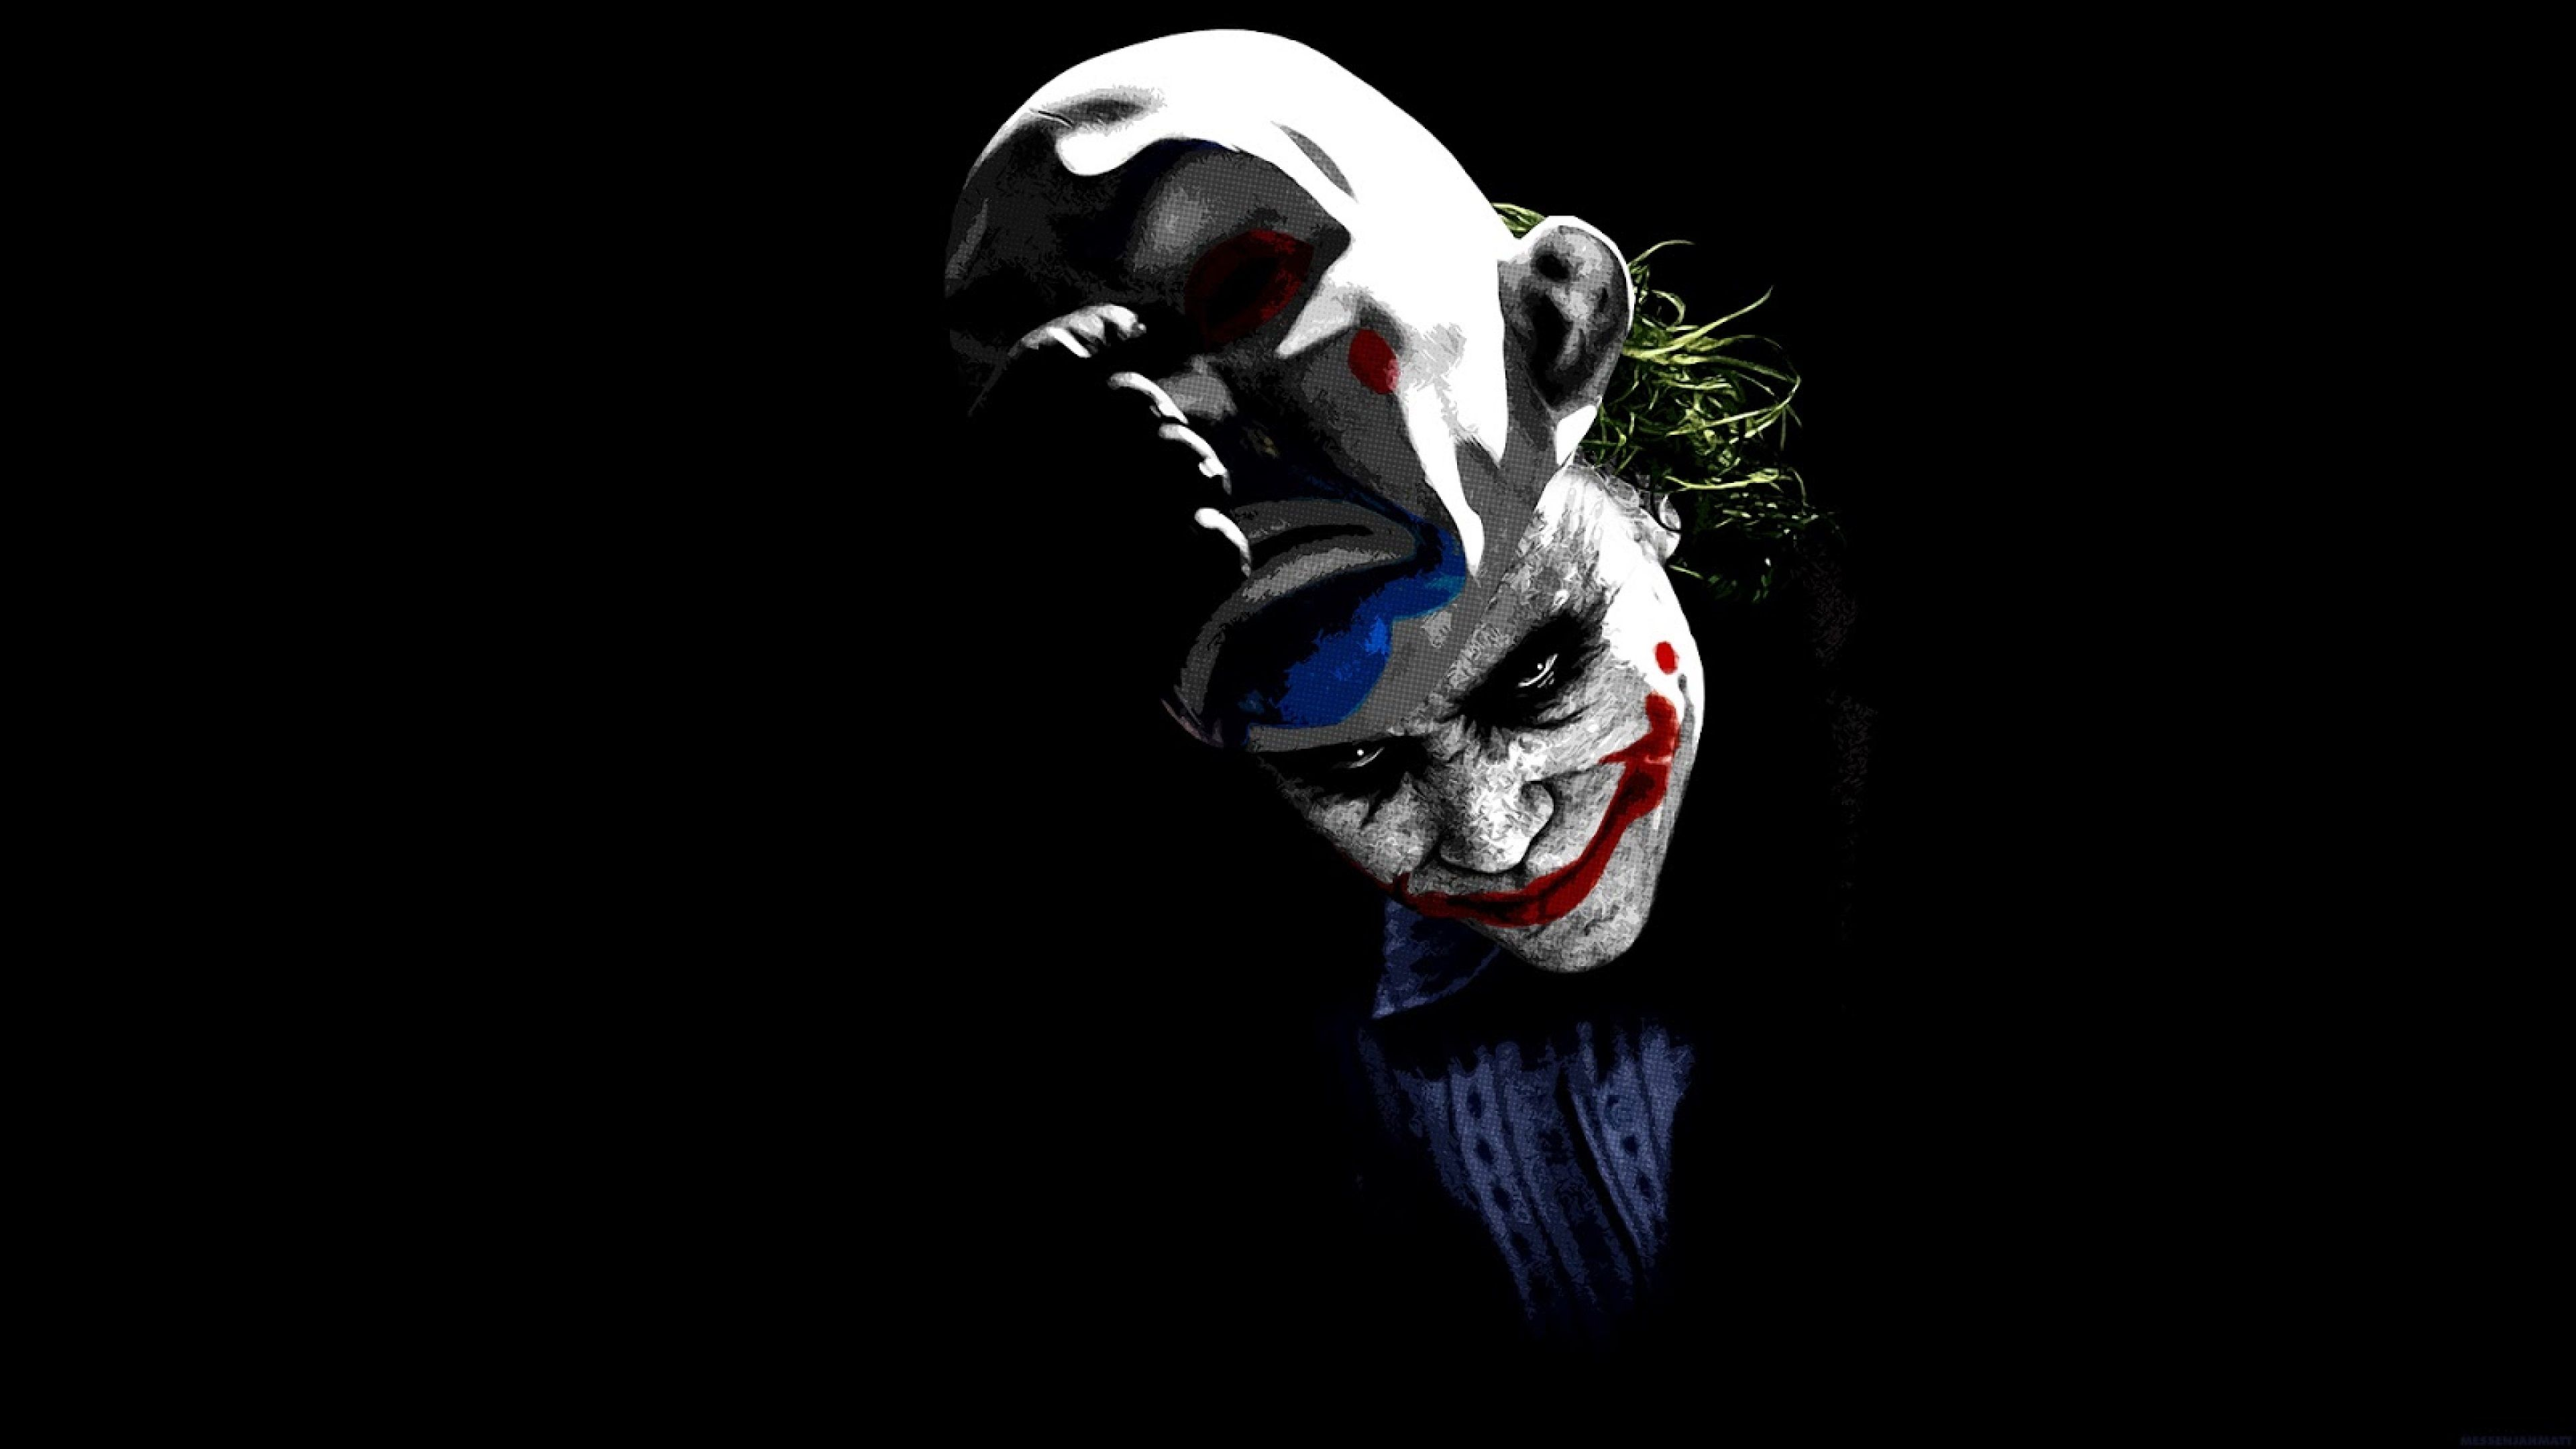 3840x2160 Joker 4k Pc Desktop Wallpaper Hd Heath Ledger Laptop